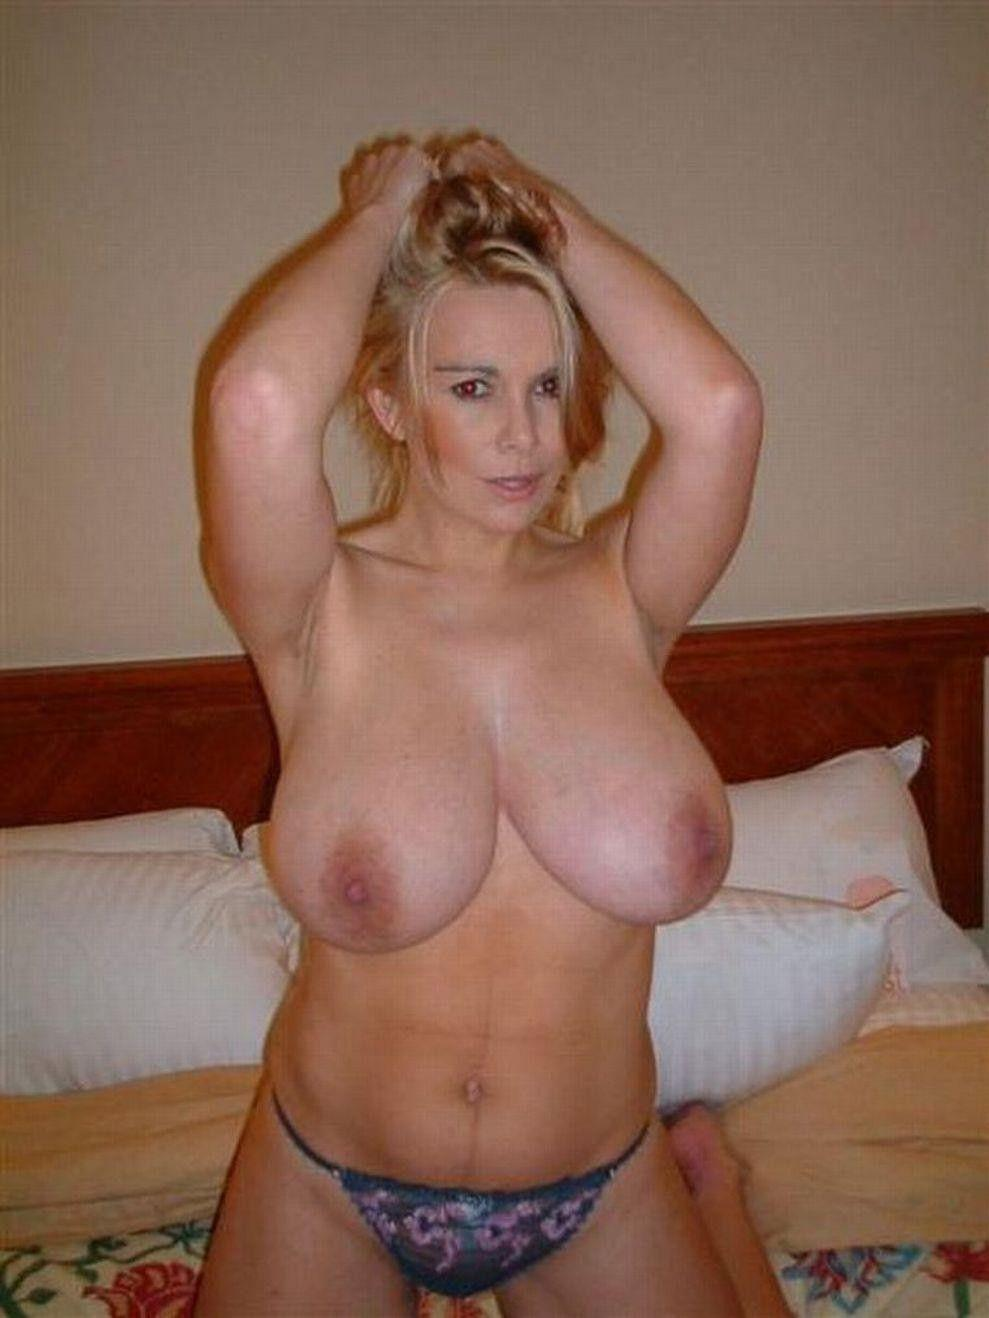 Doubt it. Hot blond big tites